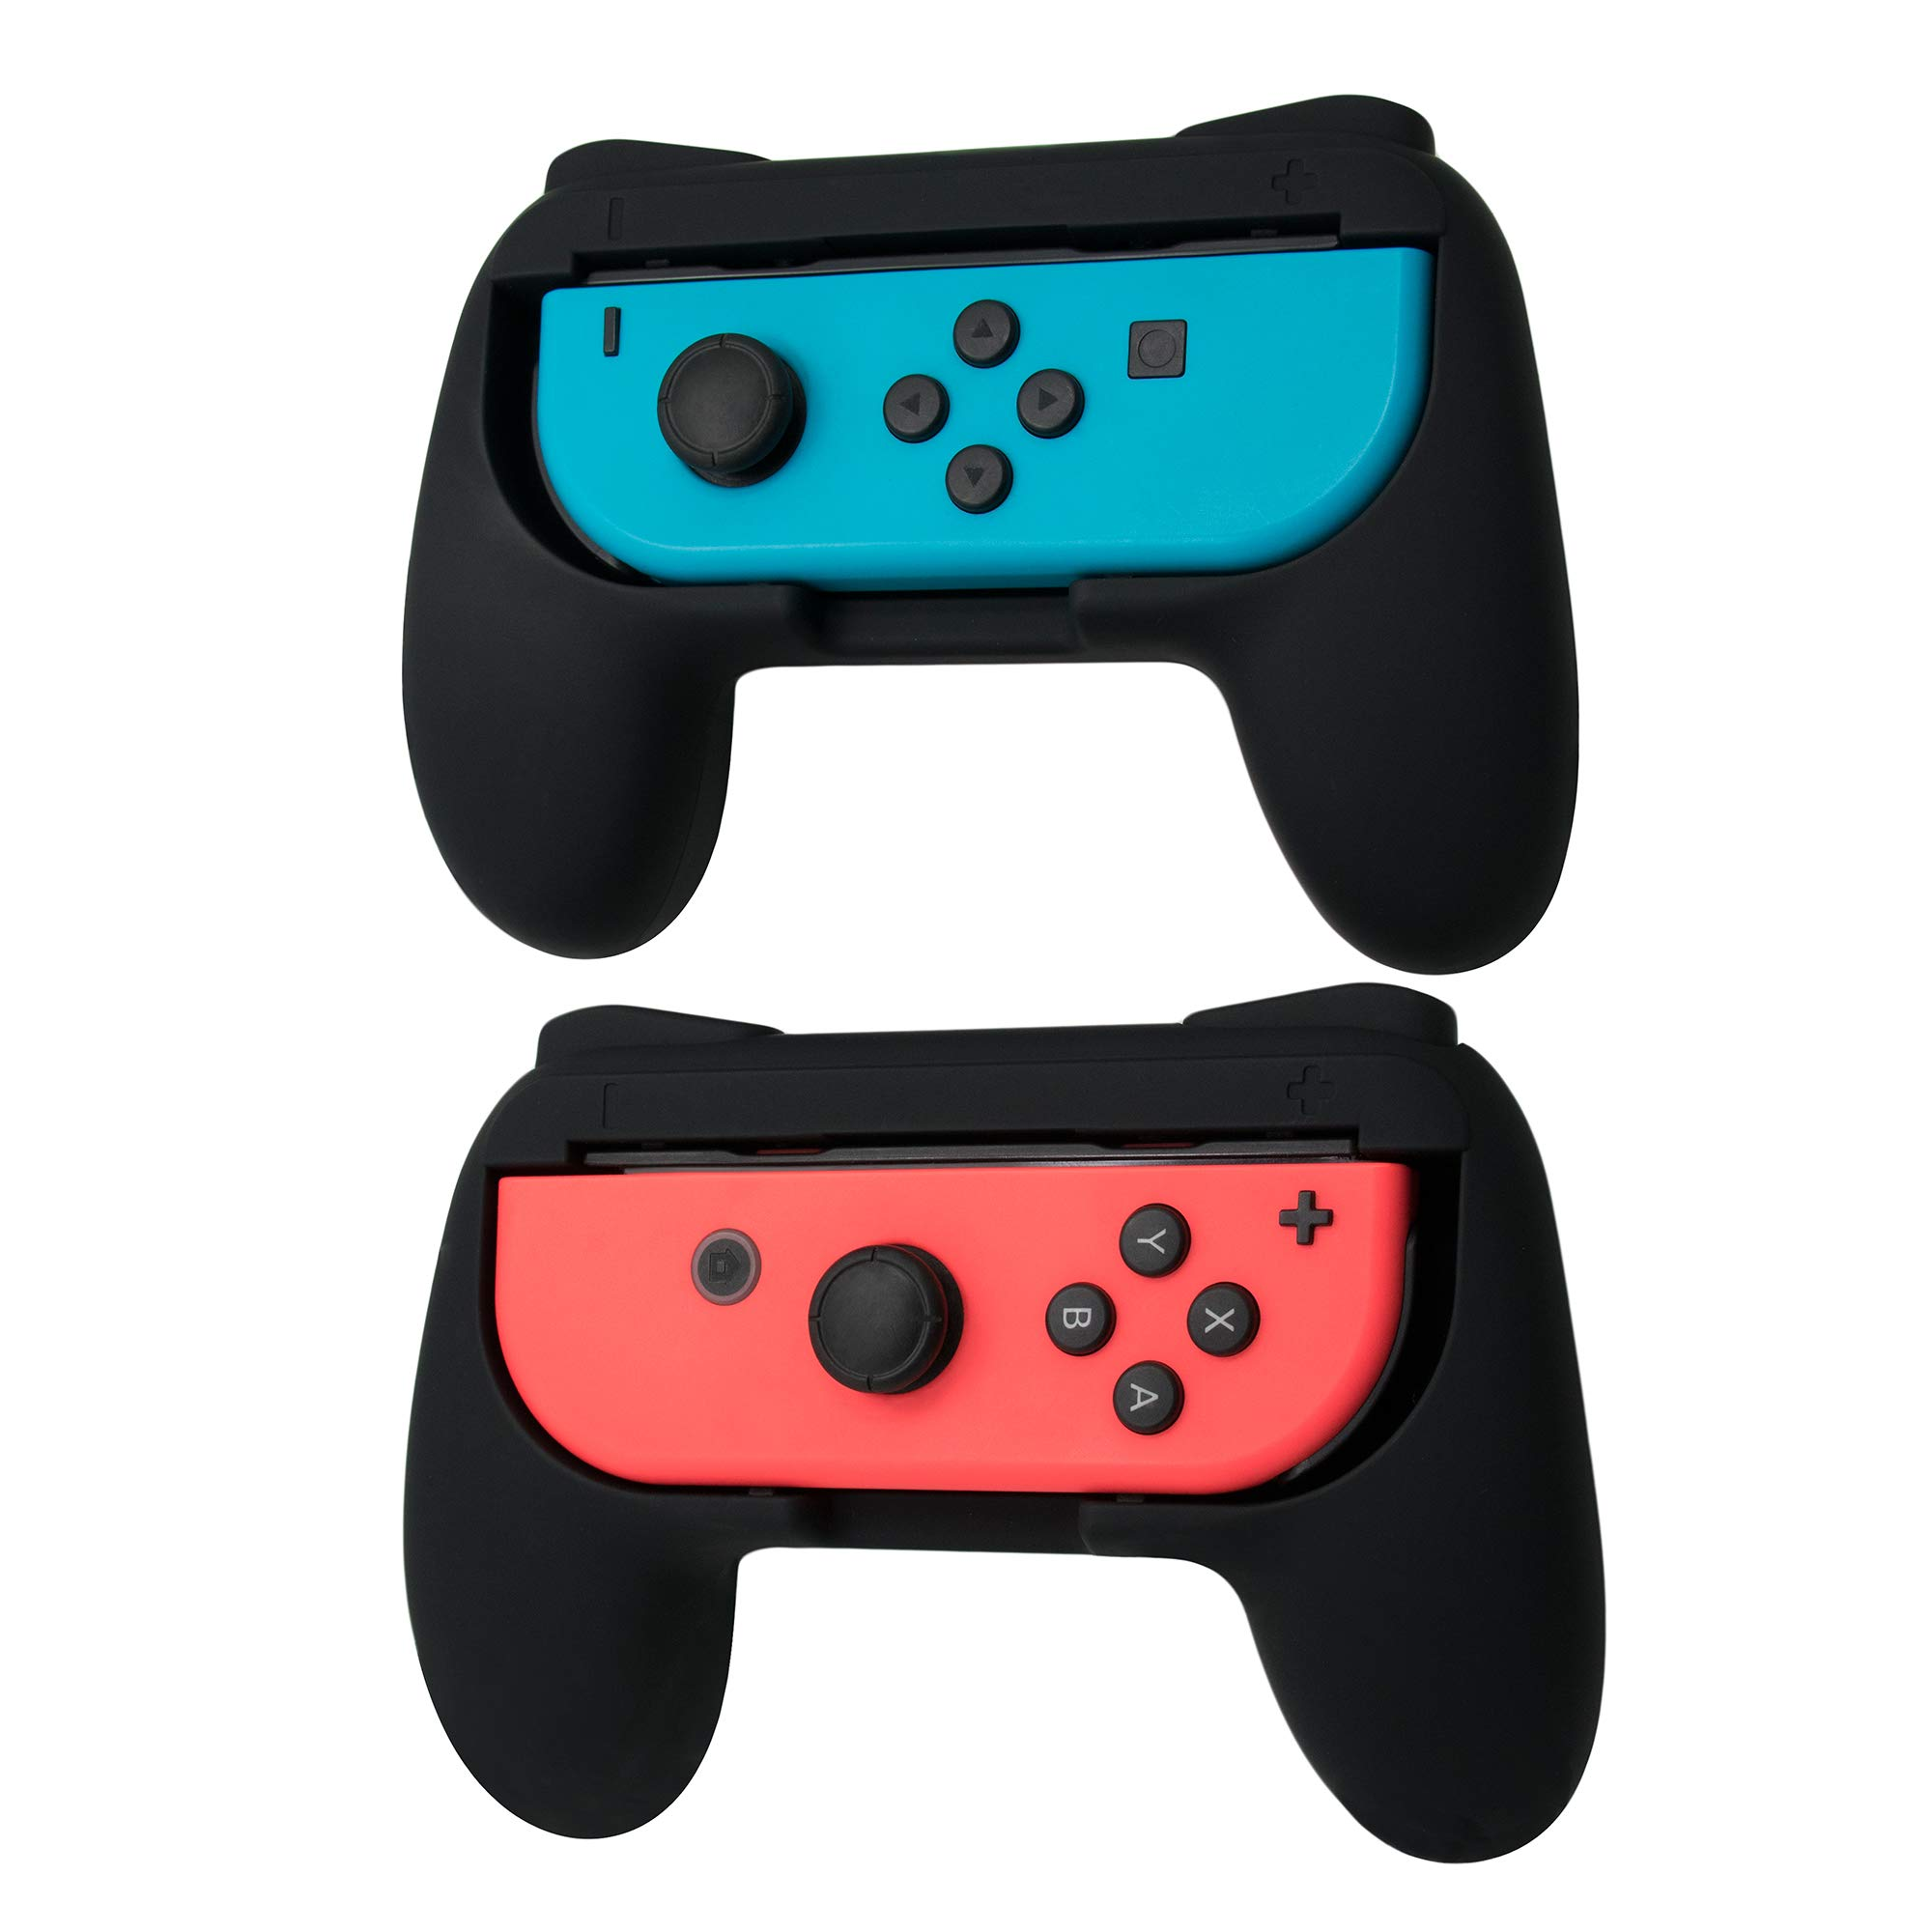 TOMSIN Grips for Nintendo Switch Joy-Con, Wear-Resistant Handle Kit for Switch Joy Con Controllers 2 Pack (Black)